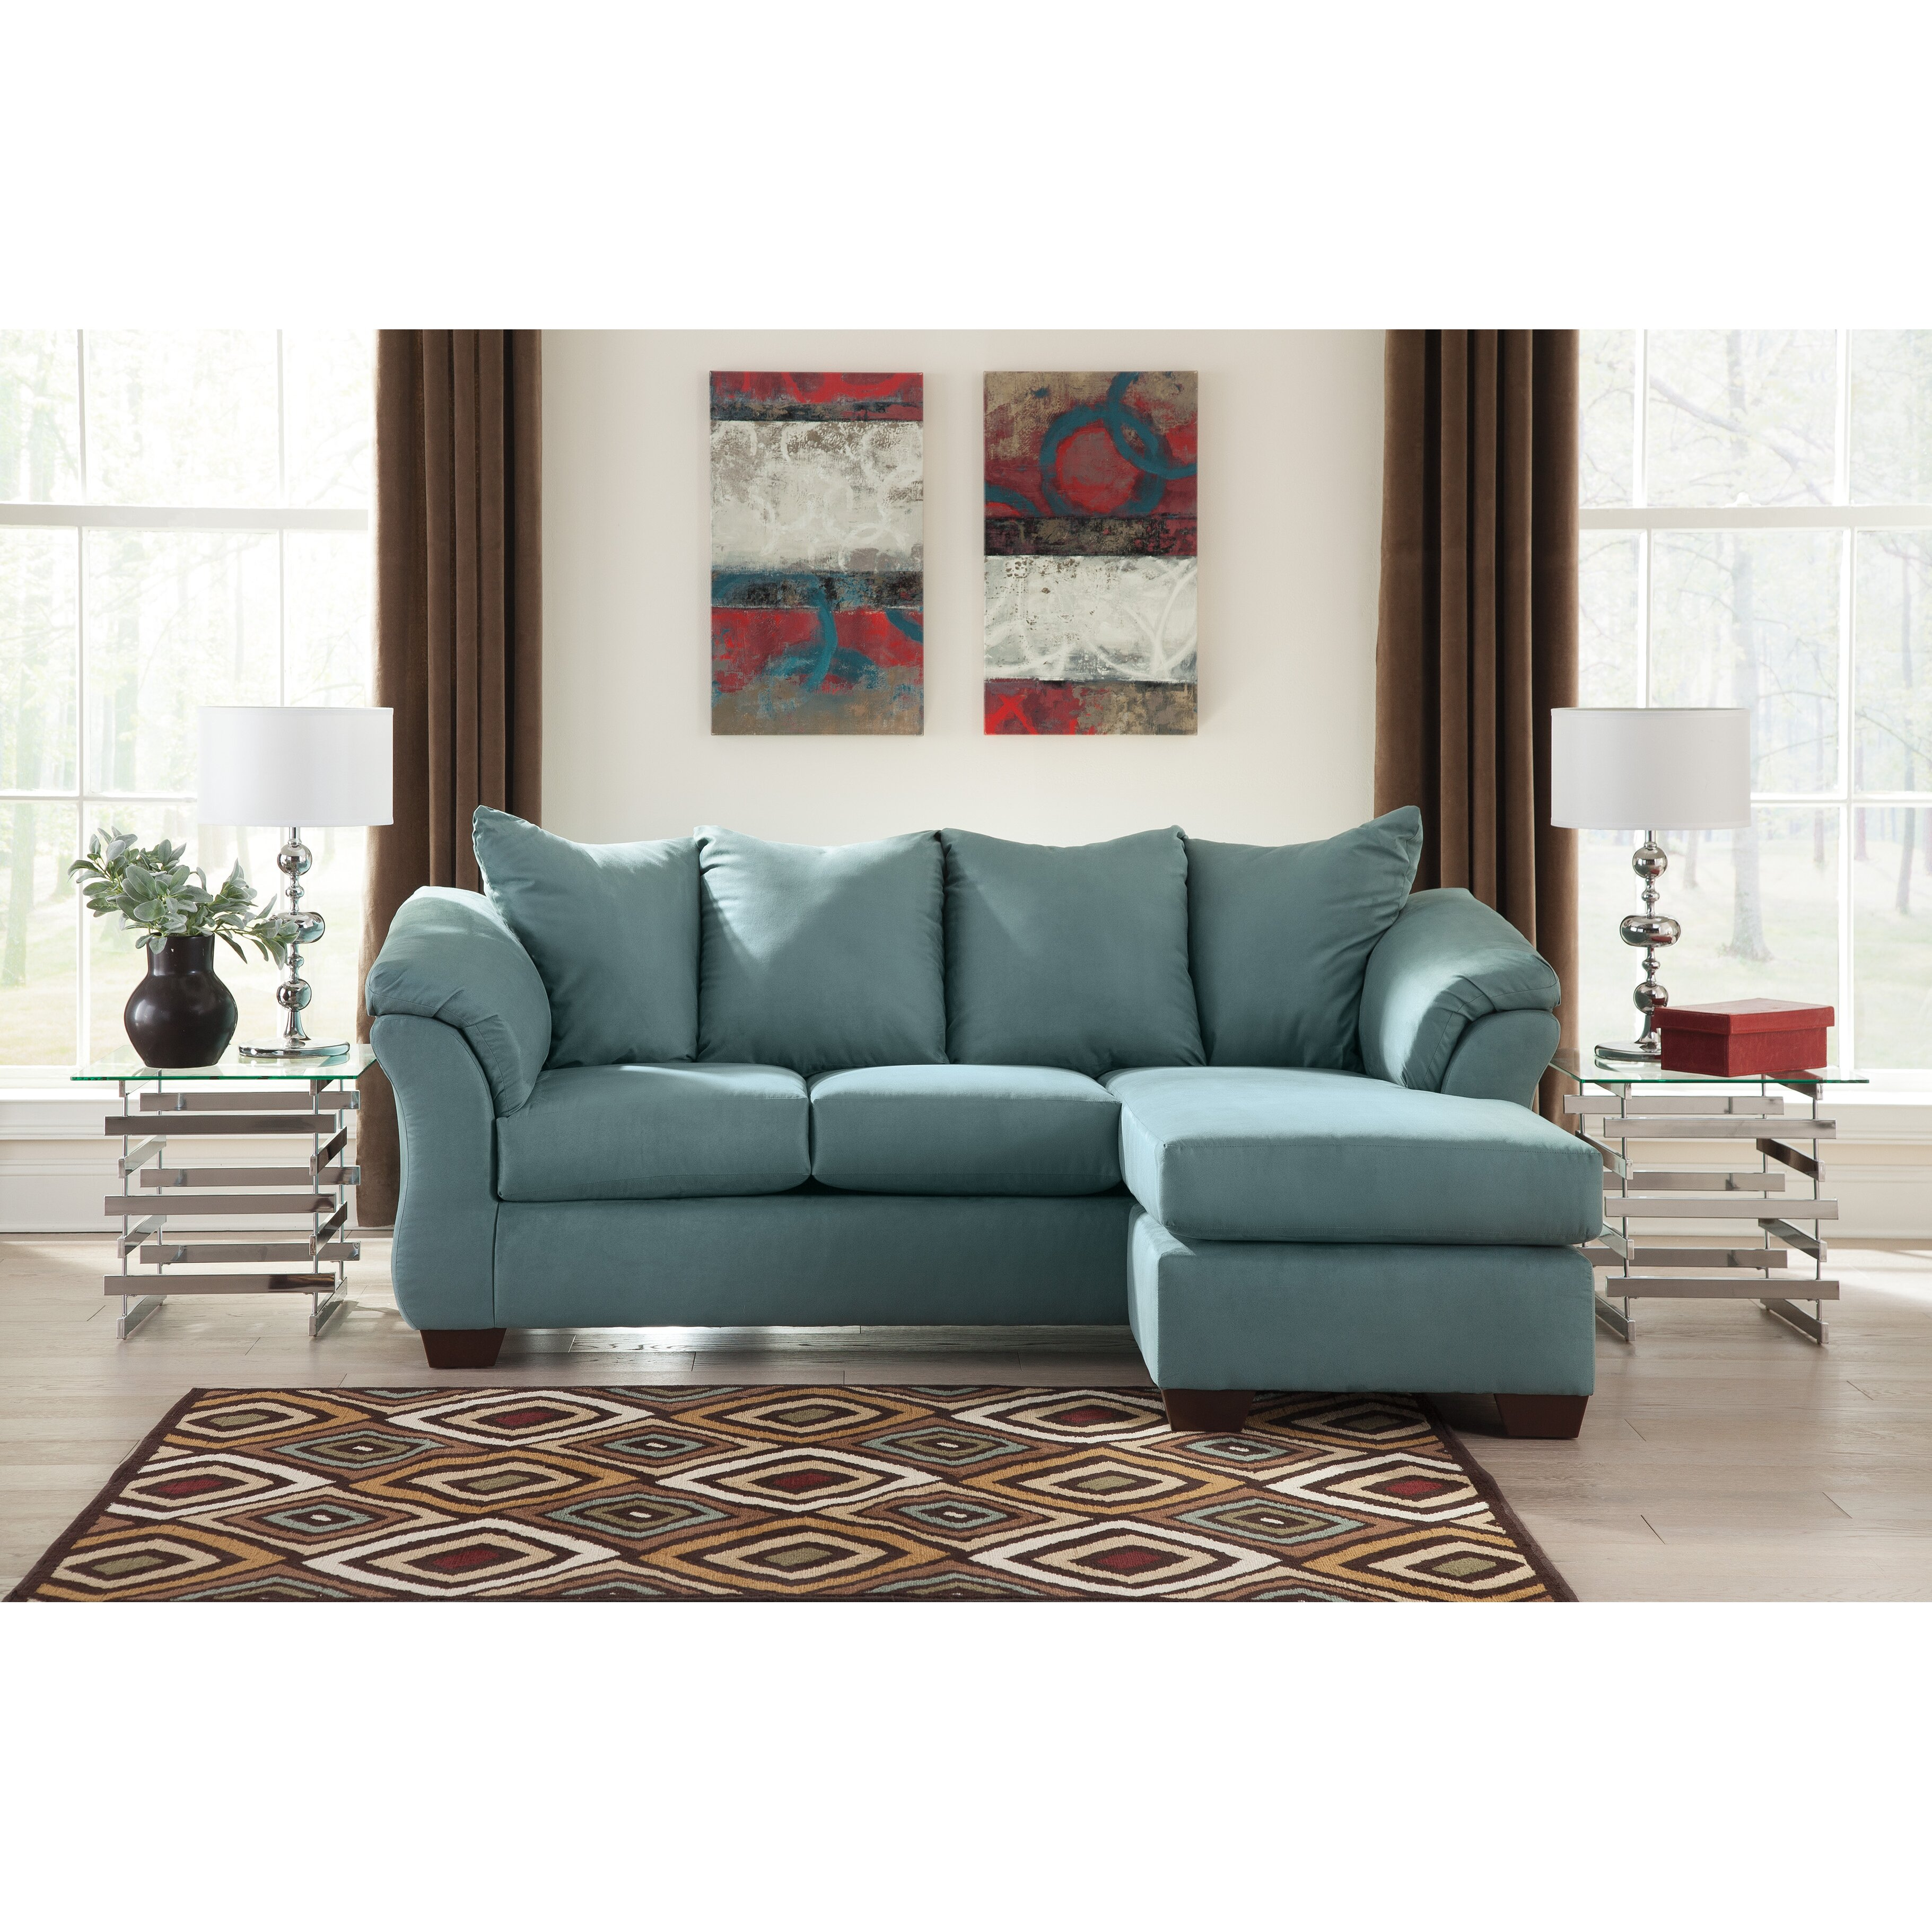 Sectional Sofas For Sale In Huntsville Al: Signature Design By Ashley Darcy Sectional & Reviews